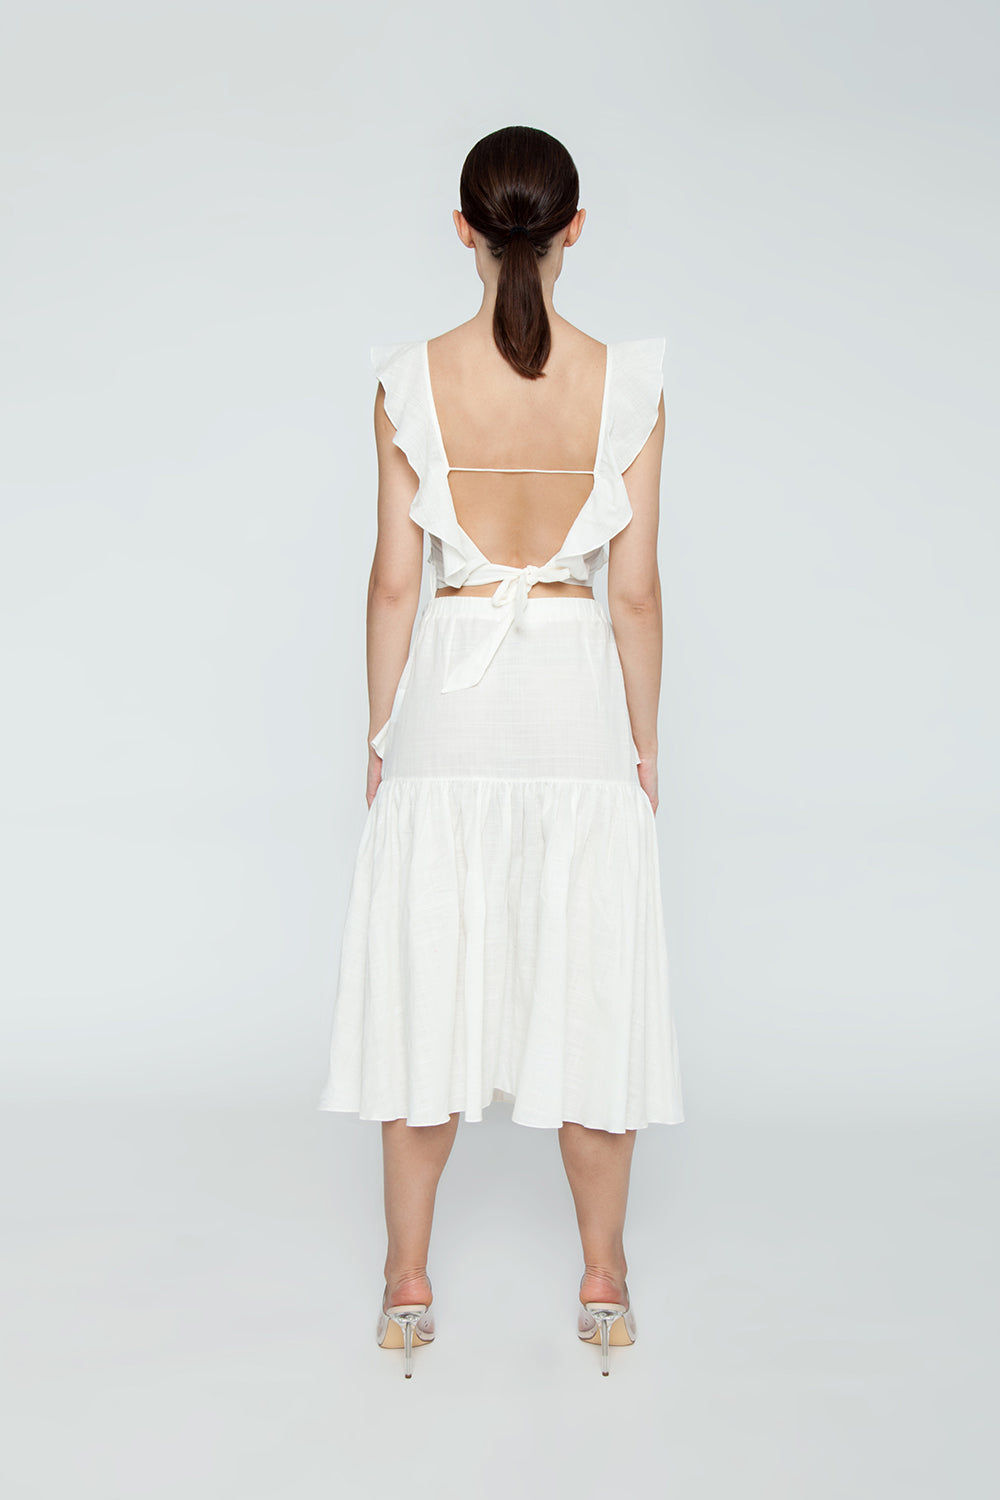 CLUBE BOSSA Lubba Cropped Blouse - Off White Top   Off White  Clube Bossa Lubba Cropped Blouse - Off White Features:  Square neckline Ruffle shoulders Back lace-up fastening 100% Cotton Back View